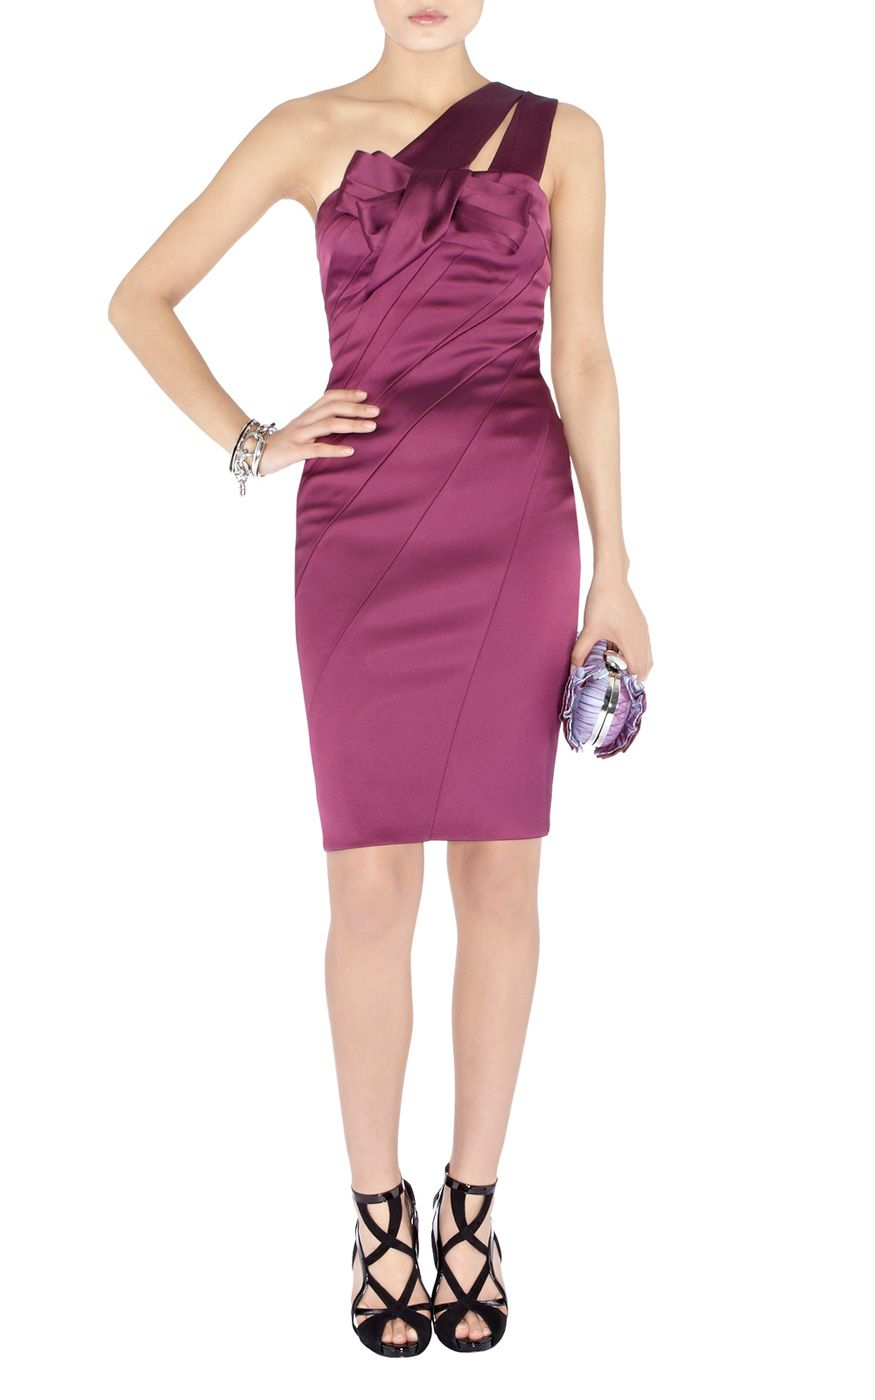 41b3446121e9 Cheap One Shoulder Purple Silk Dress-Karen Millen Dl145 Purple Signature  Stretch Satin Dress :